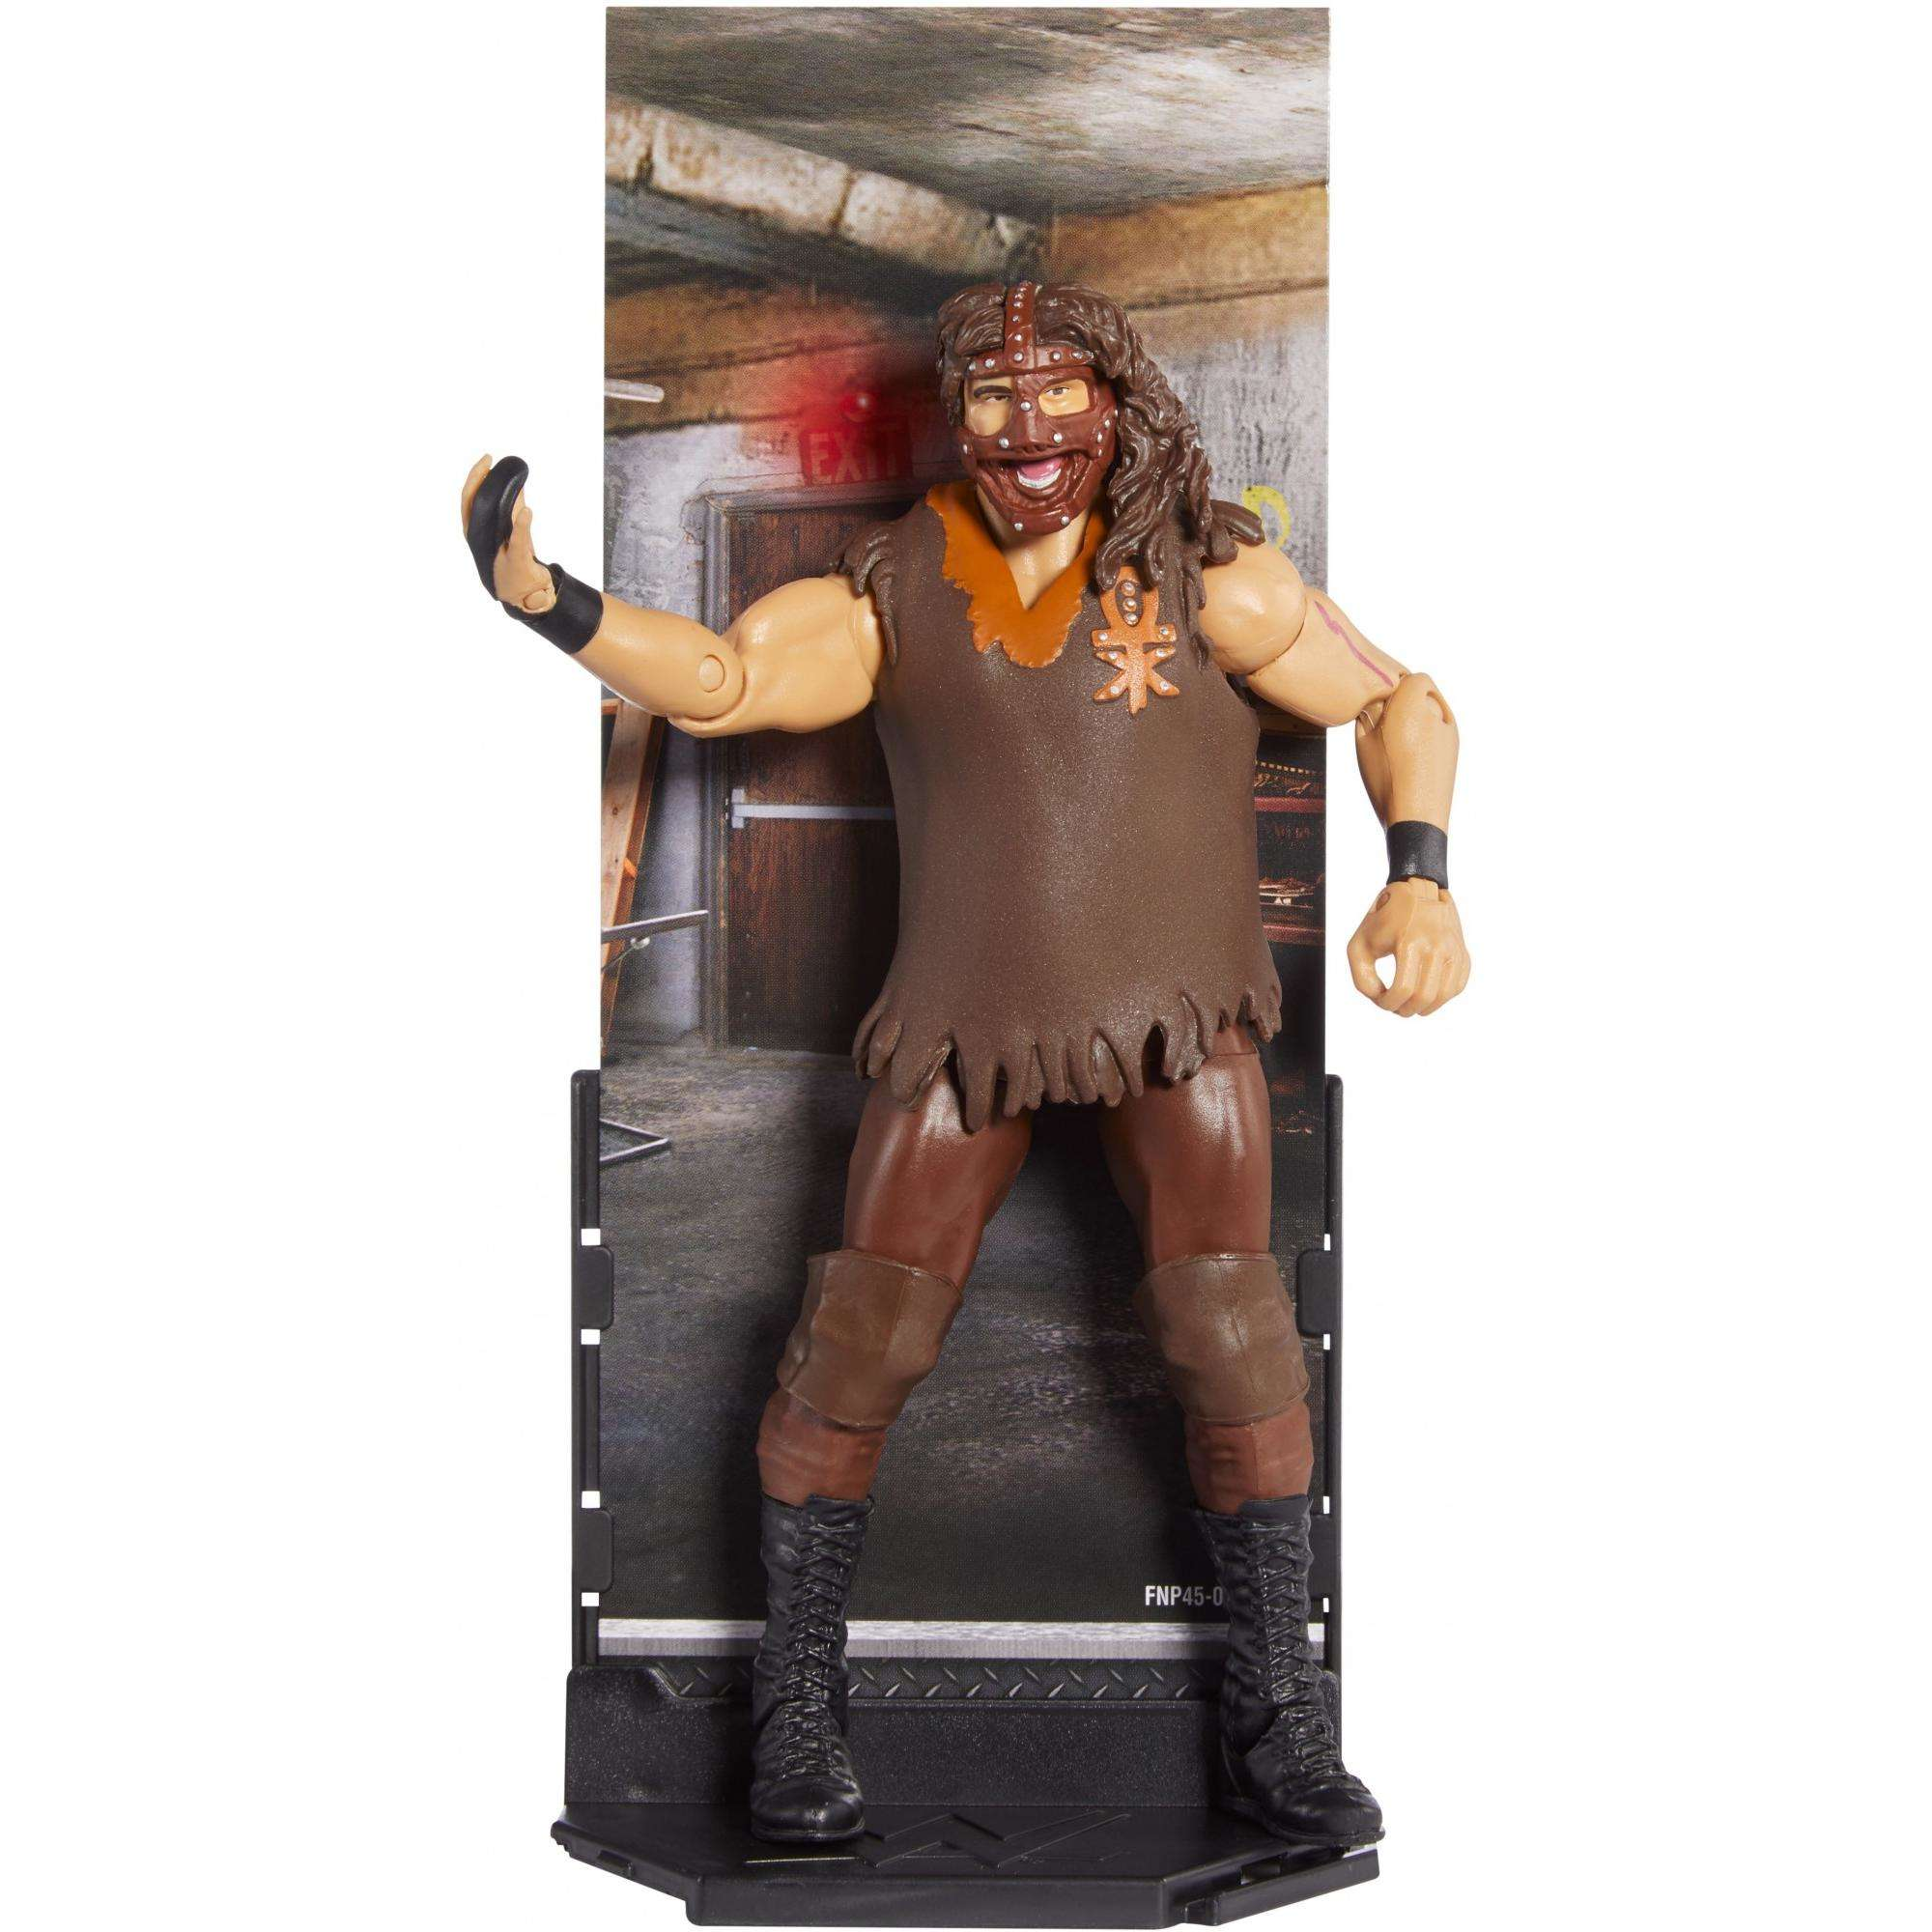 WWE Elite Collection Mankind Action Figure by Mattel